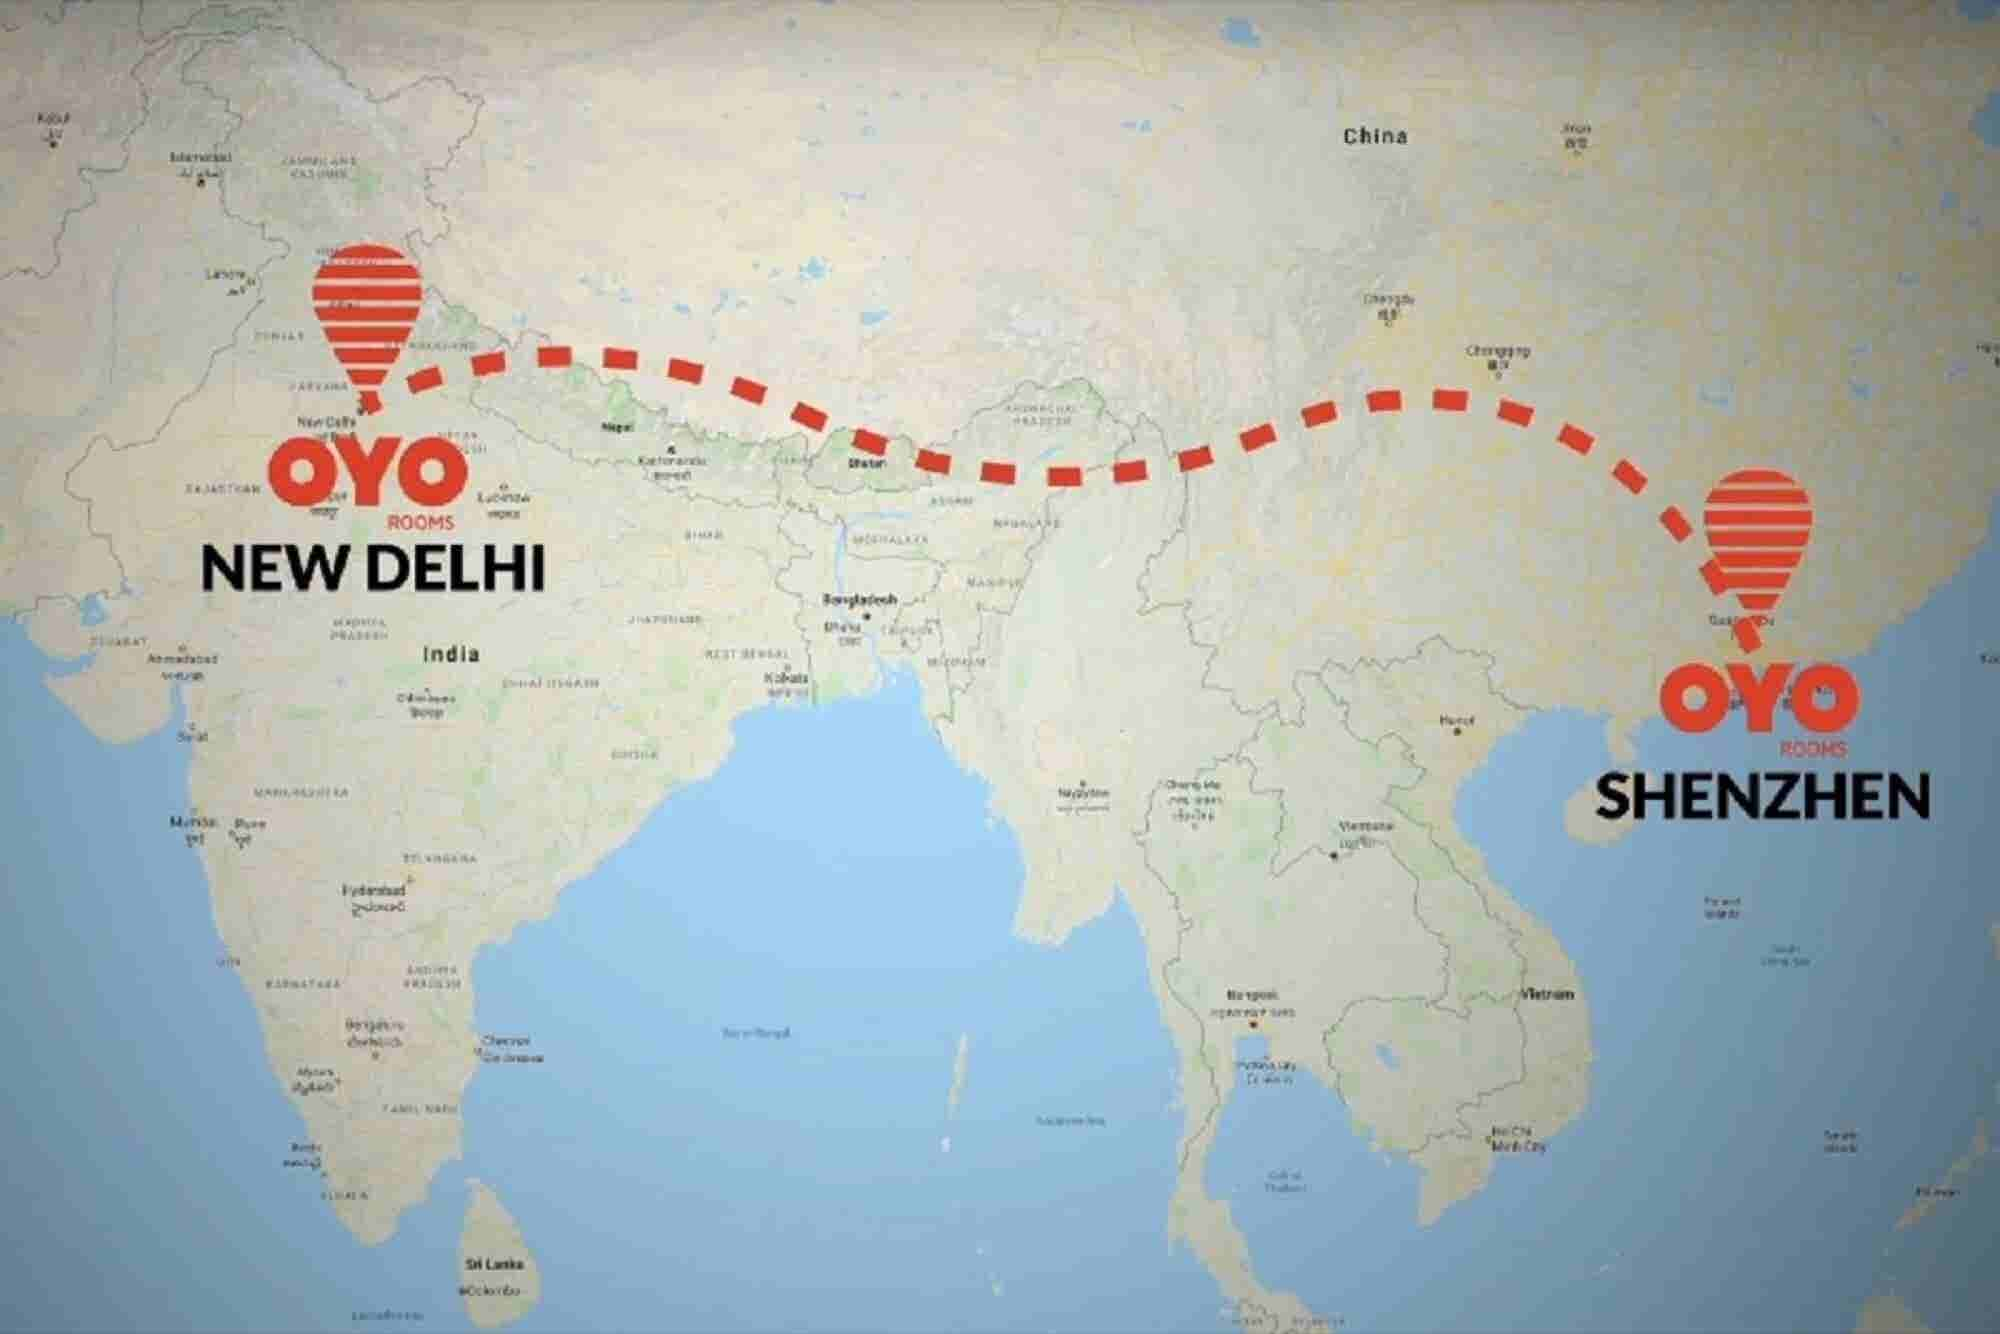 Oyo Says Ni Hao to China and Here's a Bad News for PS4 Fans. 4 Things to Know Today